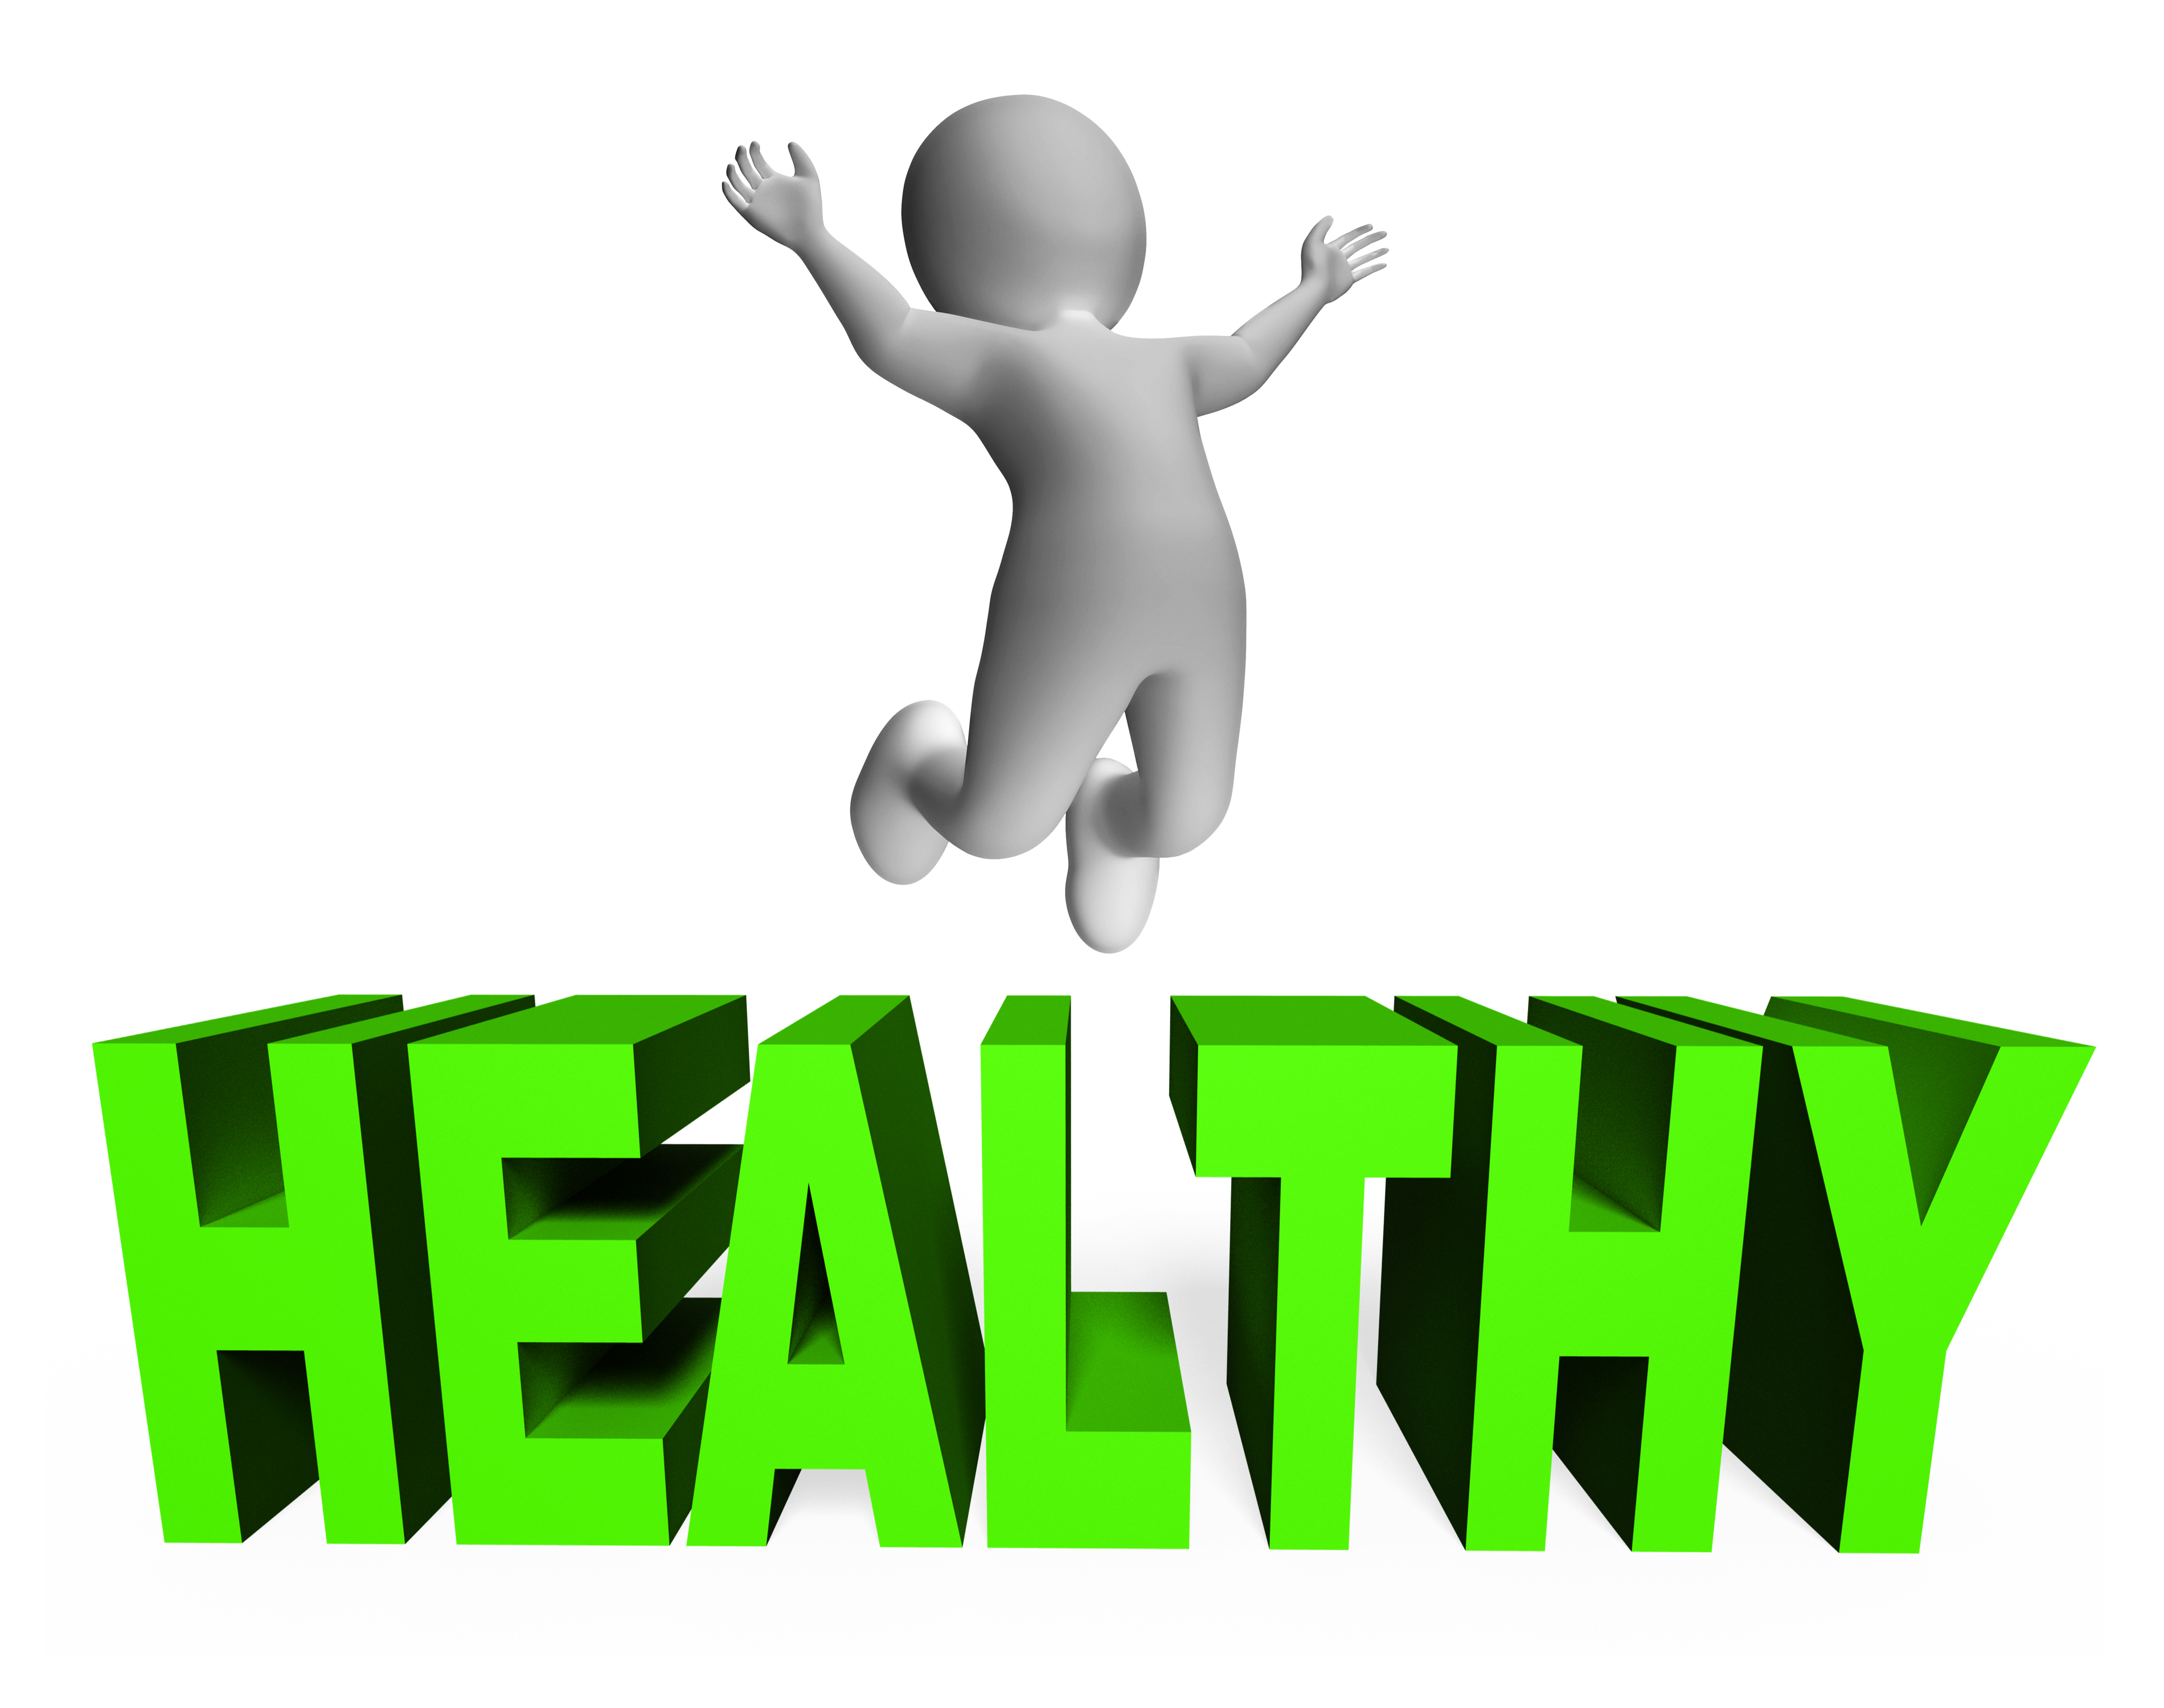 Healthy character indicates wellness jumps photo